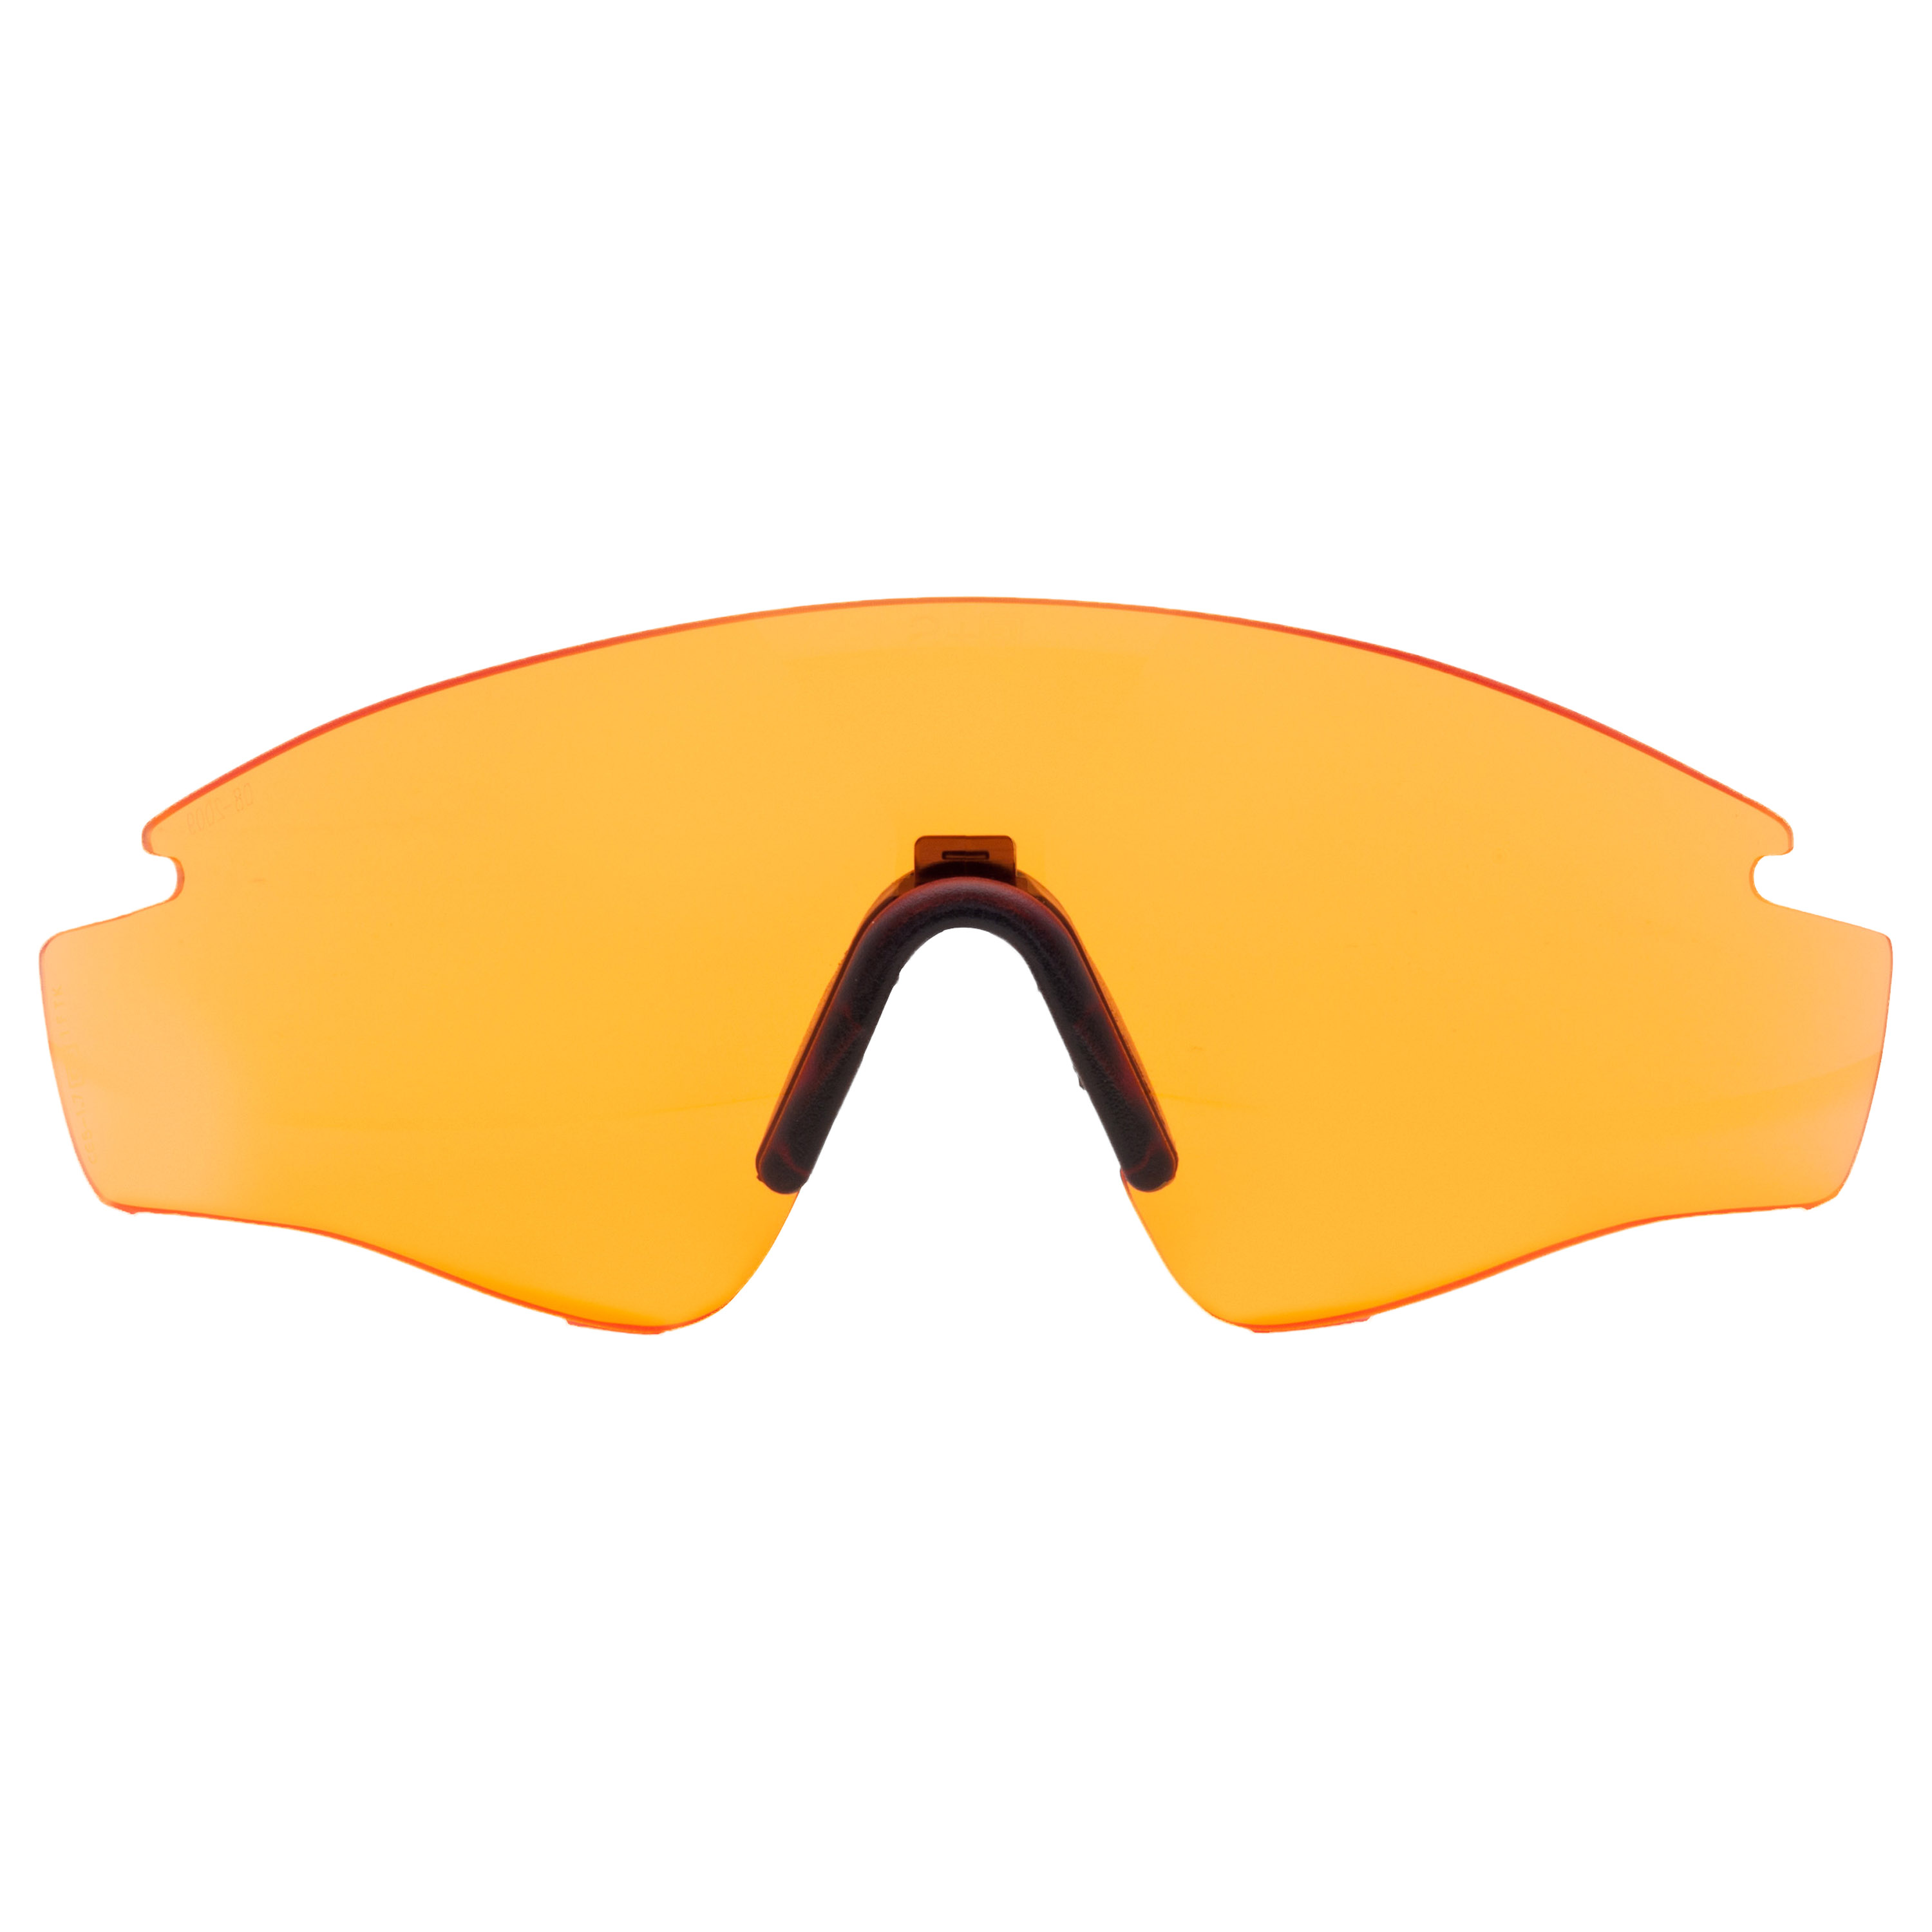 Ersatzglas Revision Sawfly Max-Wrap orange small